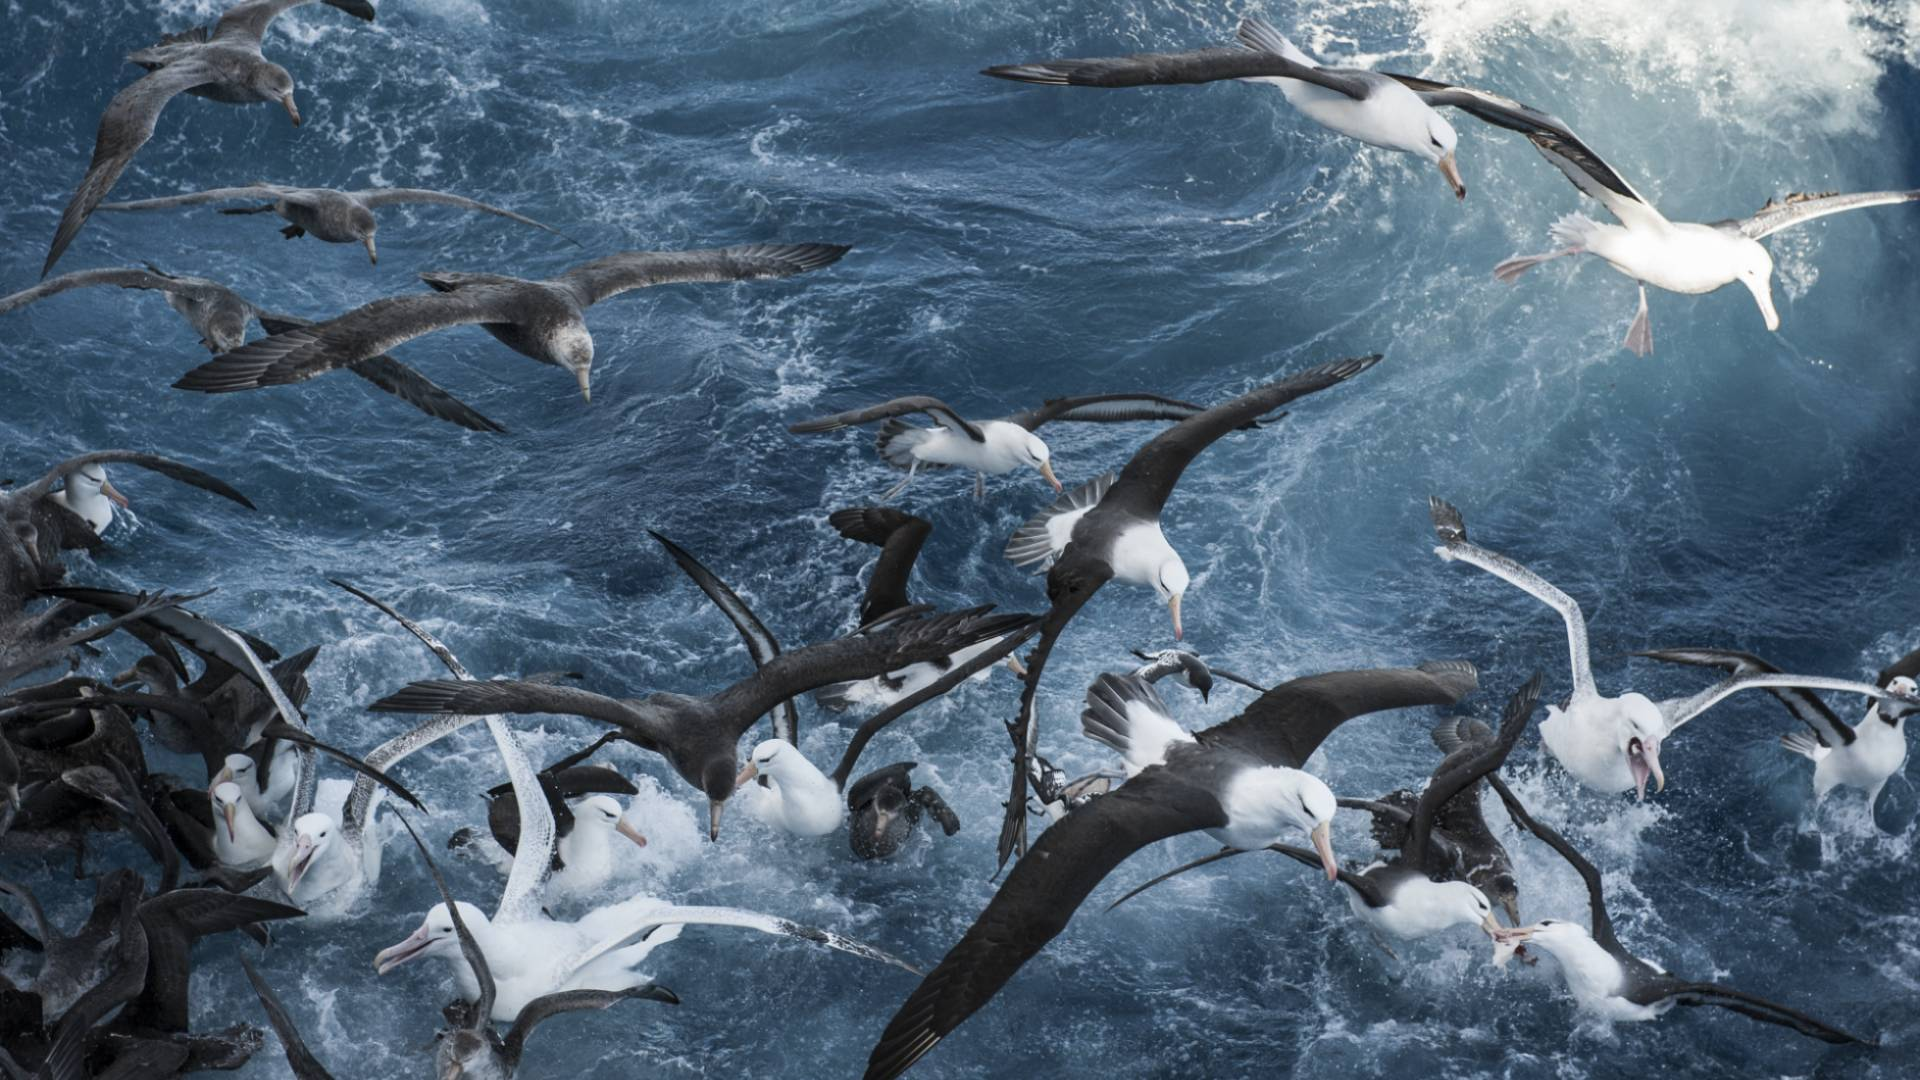 Seabird flock flying over the open ocean and diving in the water.